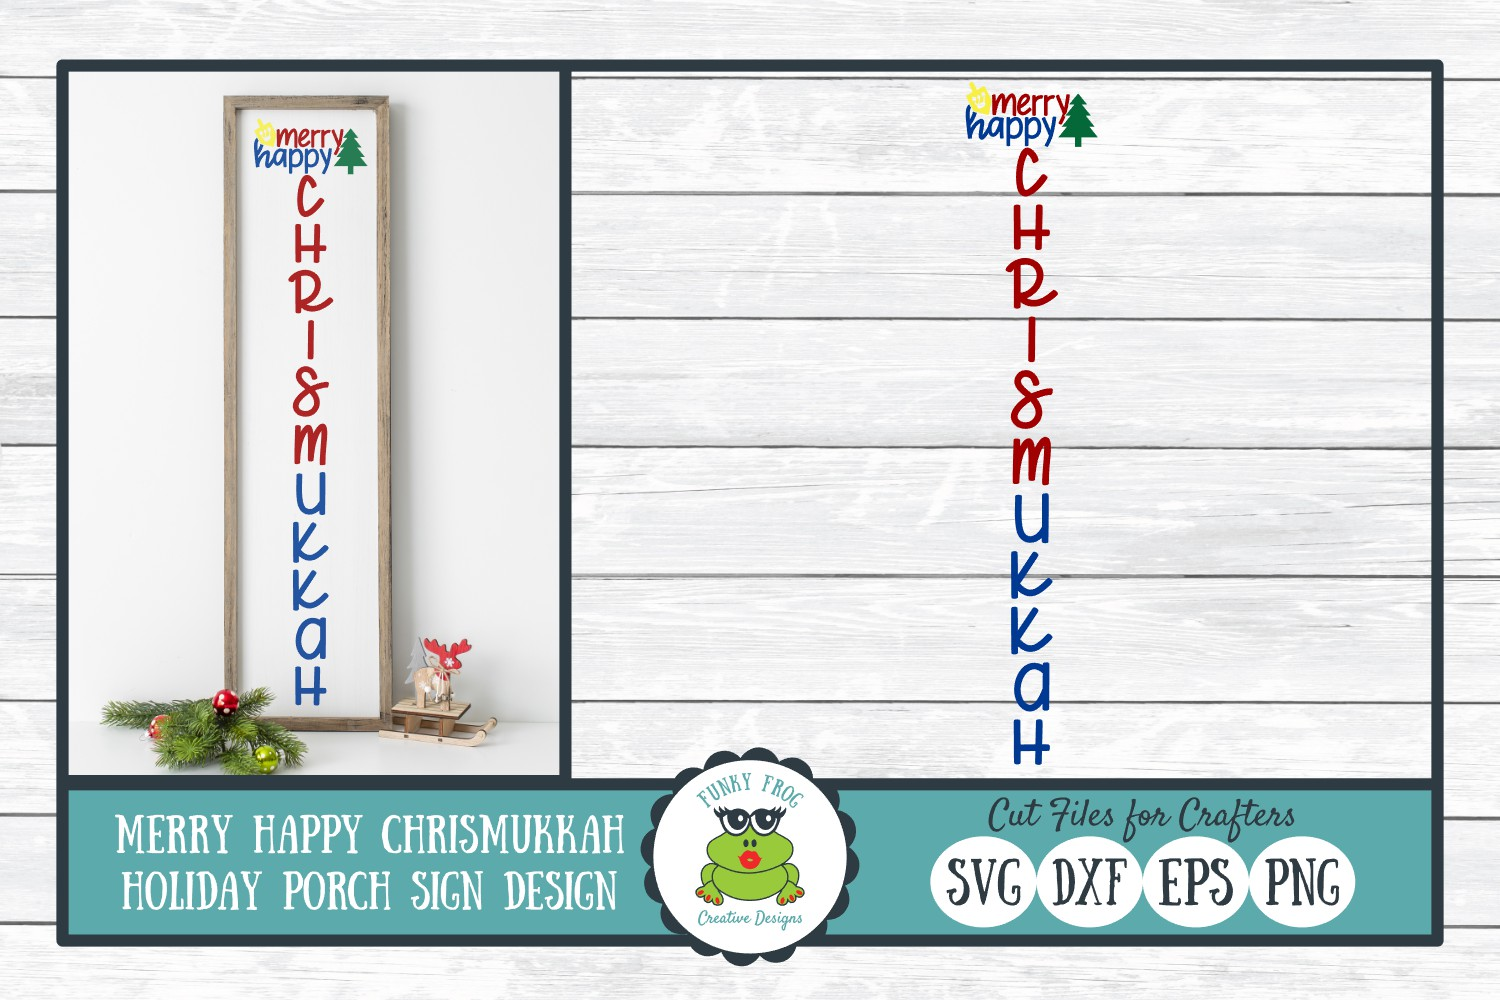 Merry Happy Chrismukkah Holiday Porch Sign Design, SVG example image 1